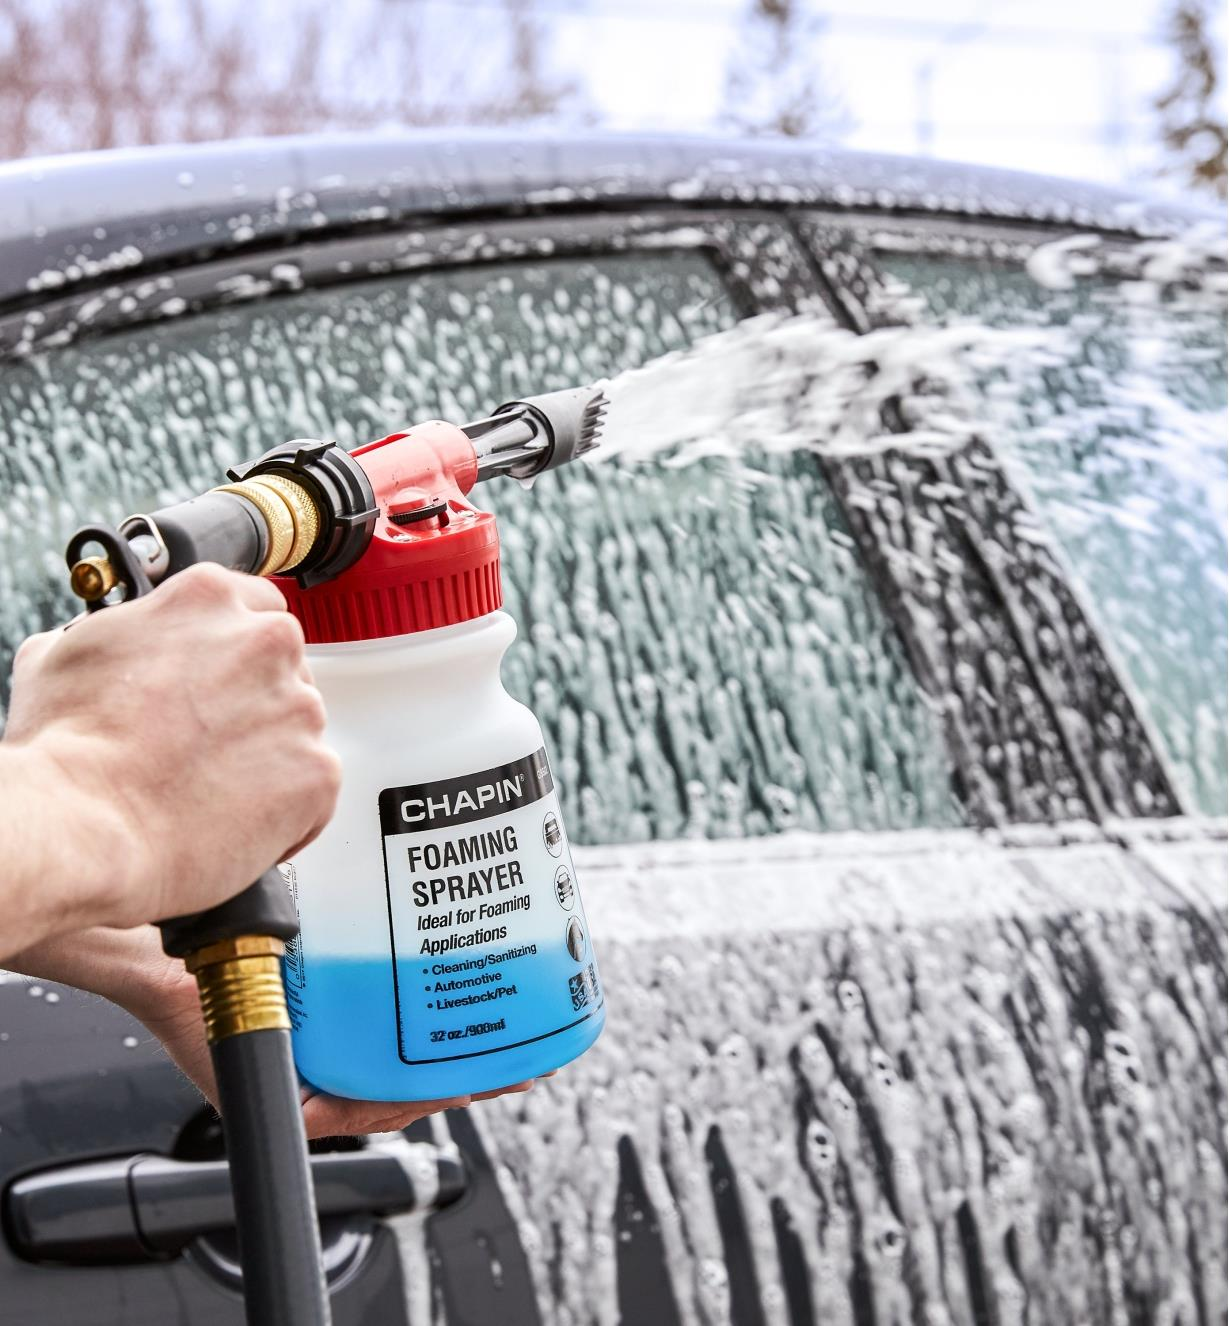 Chapin foam sprayer used to spray foamy cleaner on a car's doors and windows